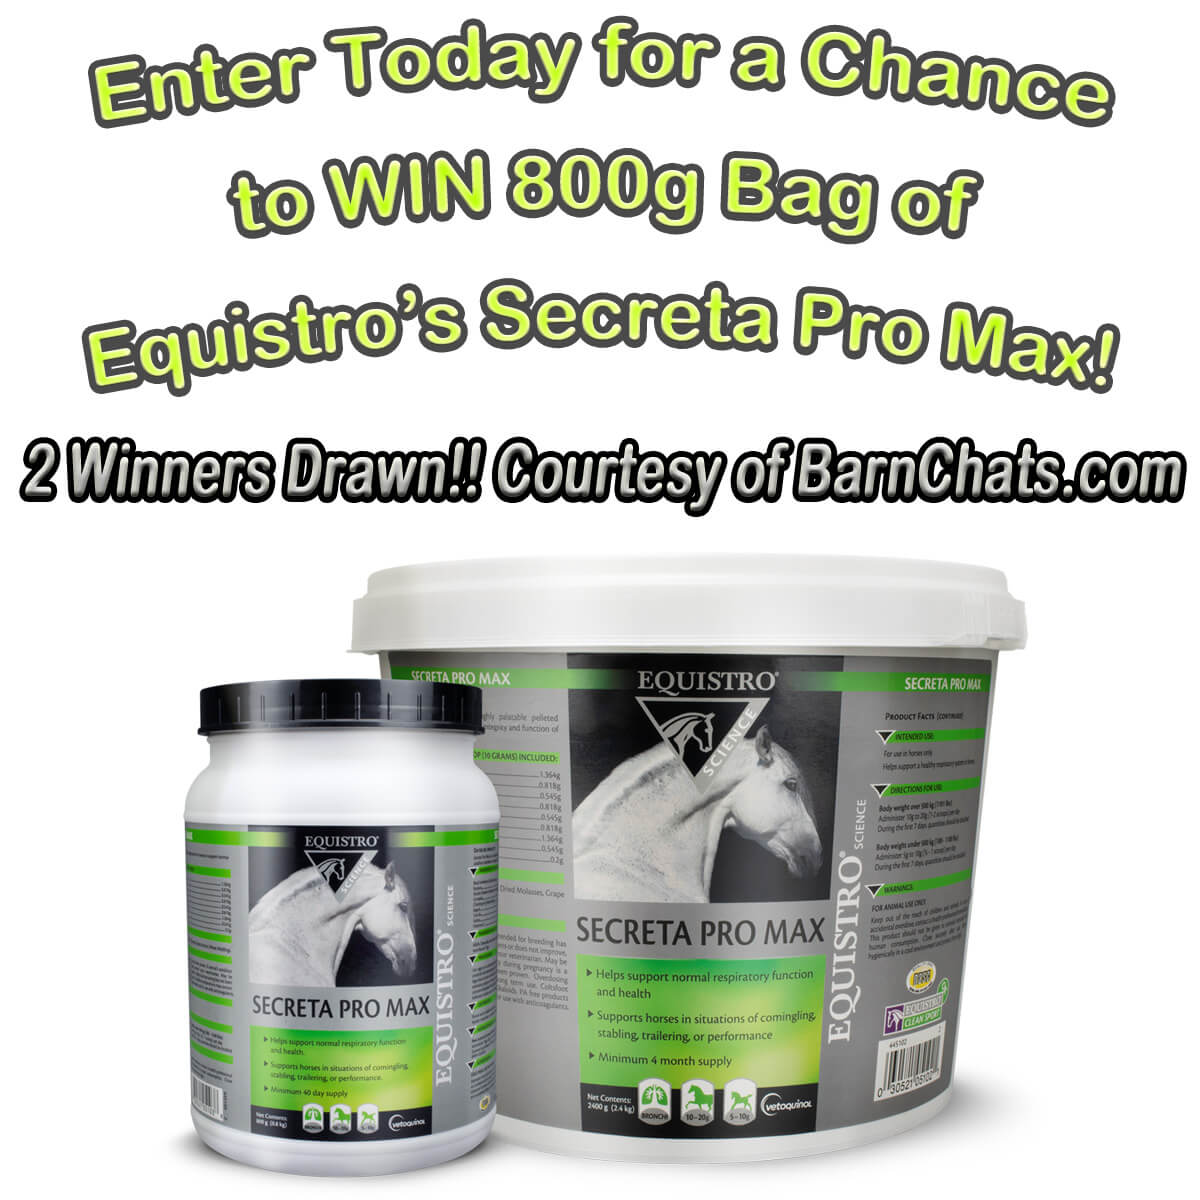 Enter today for 1 of 2 chances to win a 800g Bag of Equistro's Secreta Pro Max from BarnChats.com - a 40 day supply!